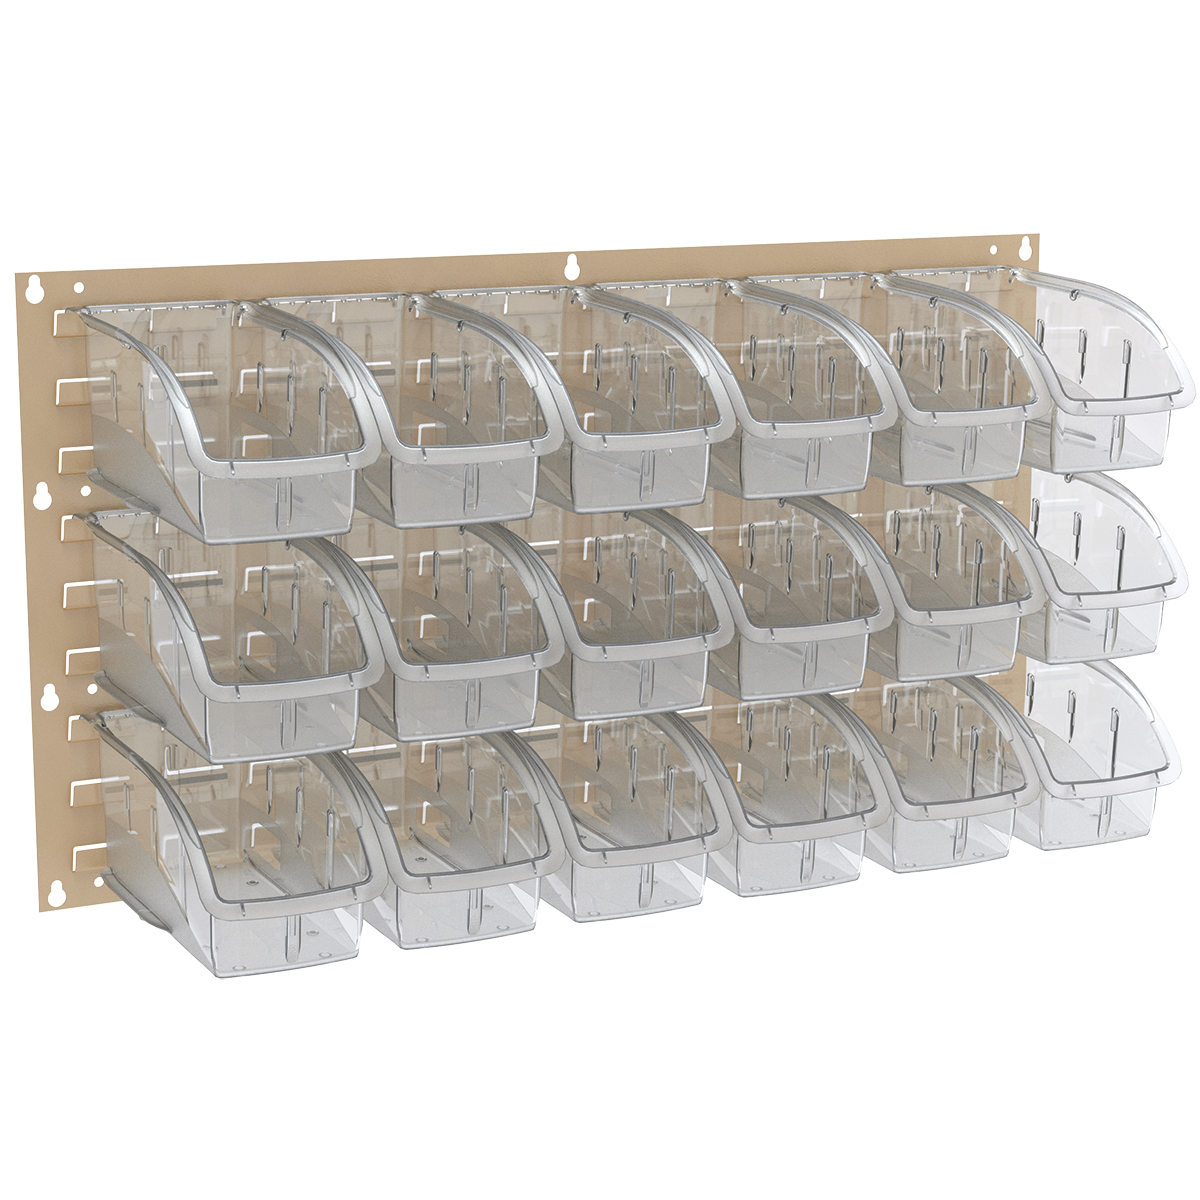 Item DISCONTINUED by Manufacturer.  Louvered Wall Panel, 35-3/4 x 19, w/ 18 InSight Bins 305B1, Gray/Clear (30636BEIGEB1).  This item sold in carton quantities of 1.